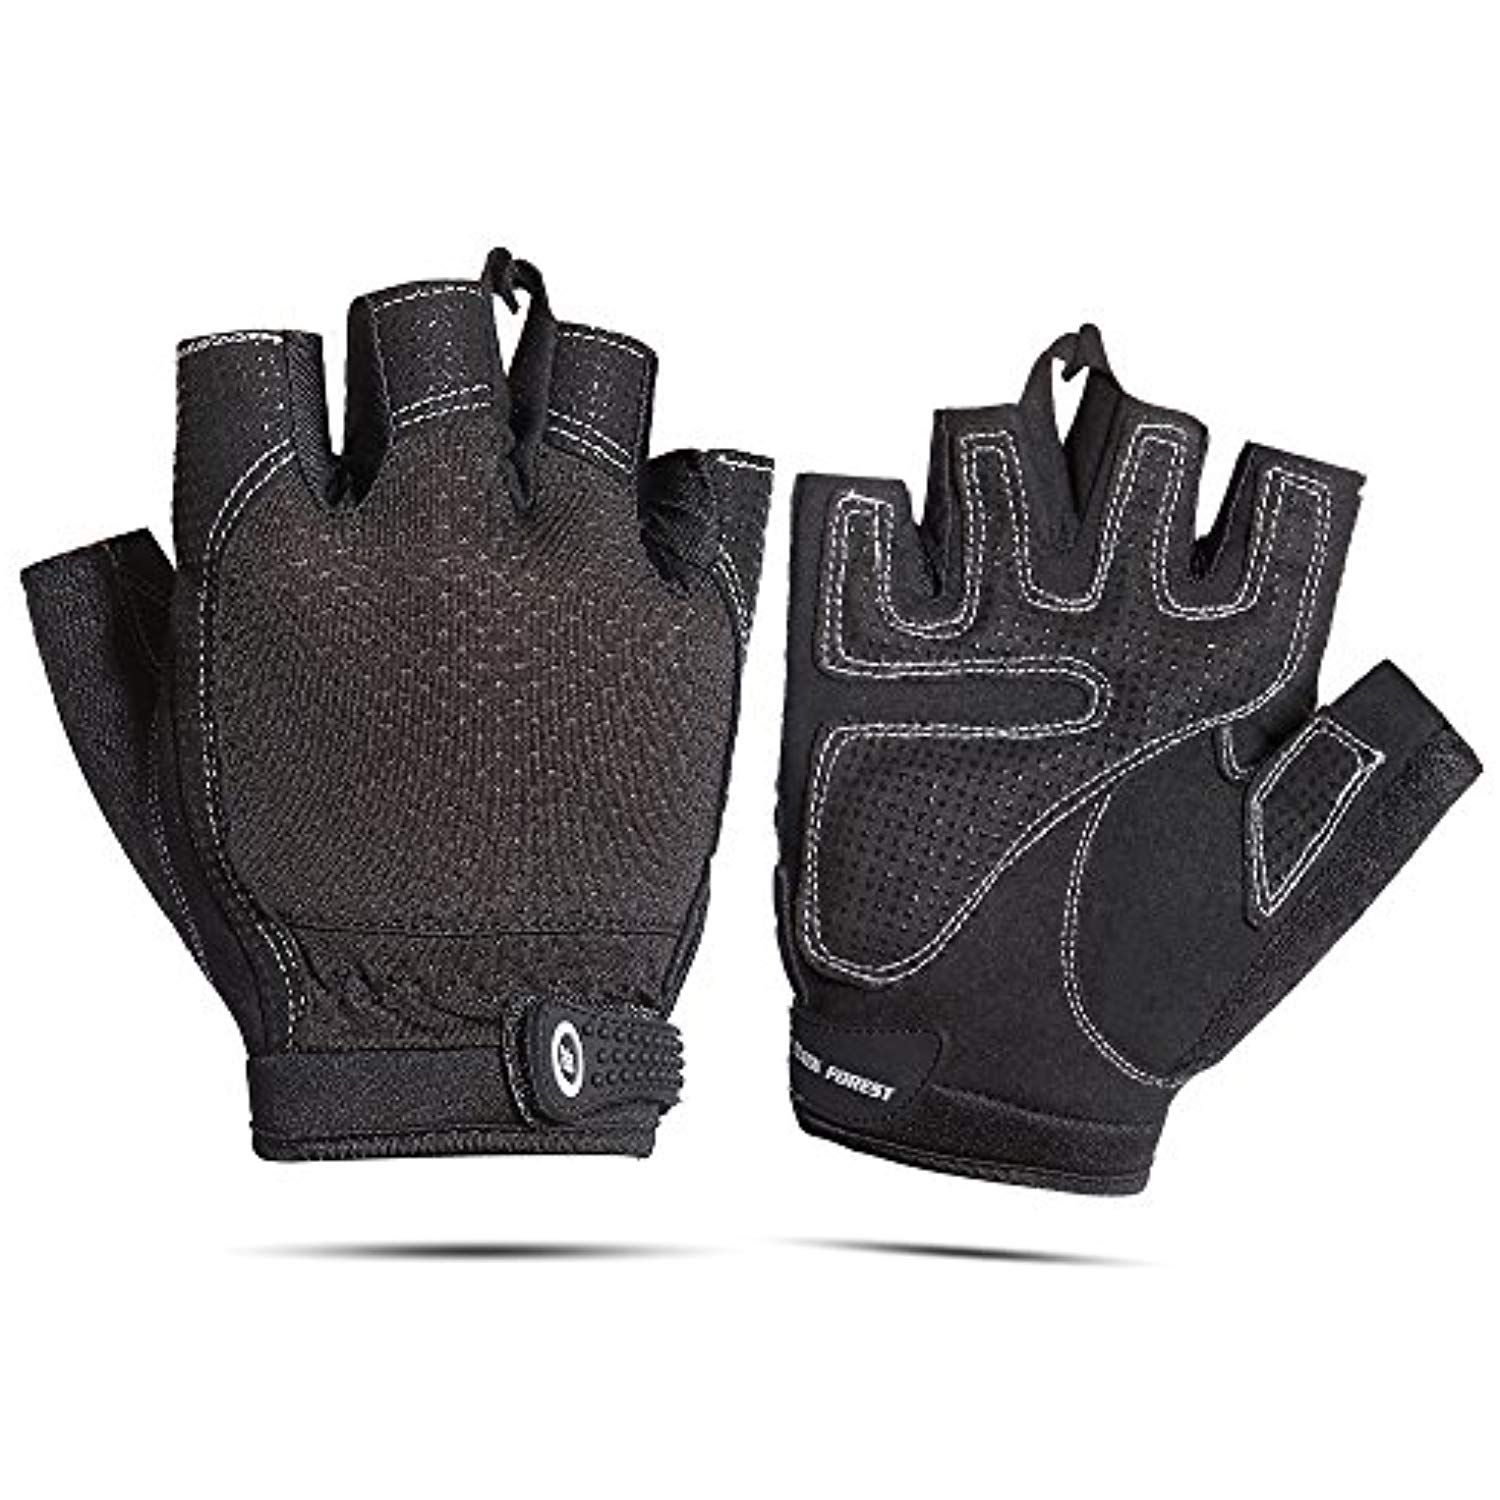 White Weight Lifting Gym Padded Leather Training Workout Fitness Gloves